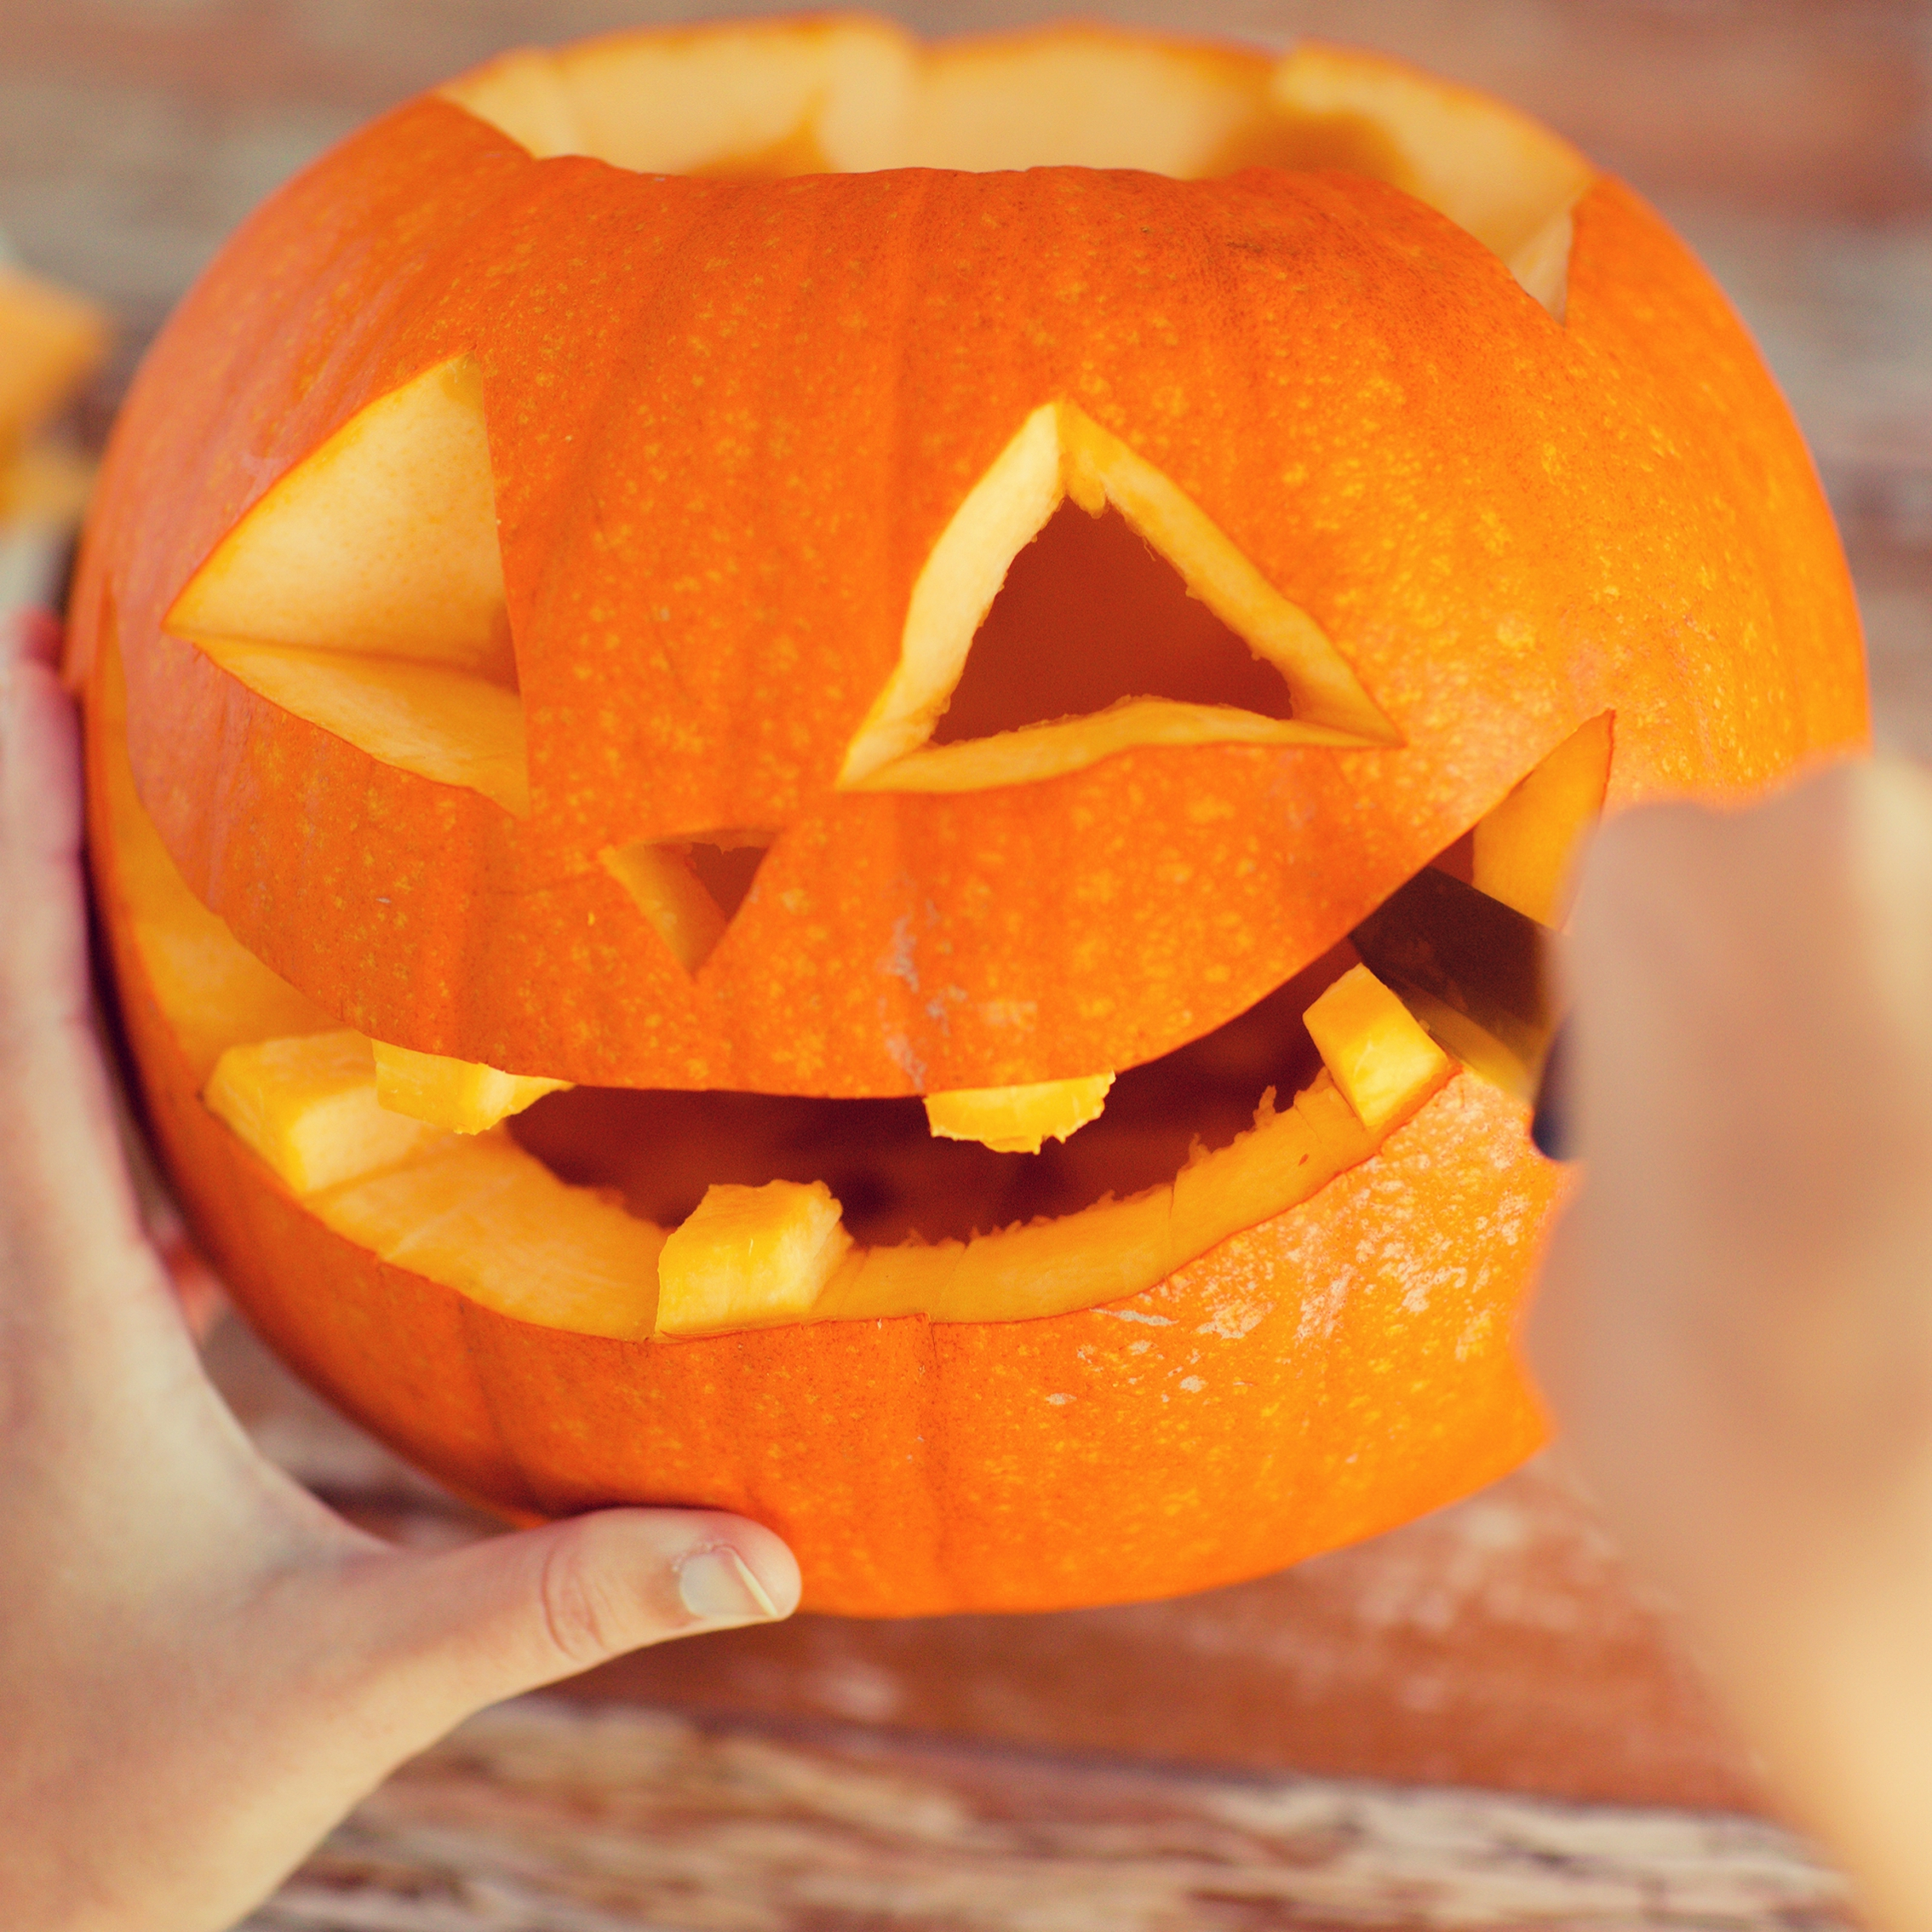 a person carving a Halloween pumpkin with a knife